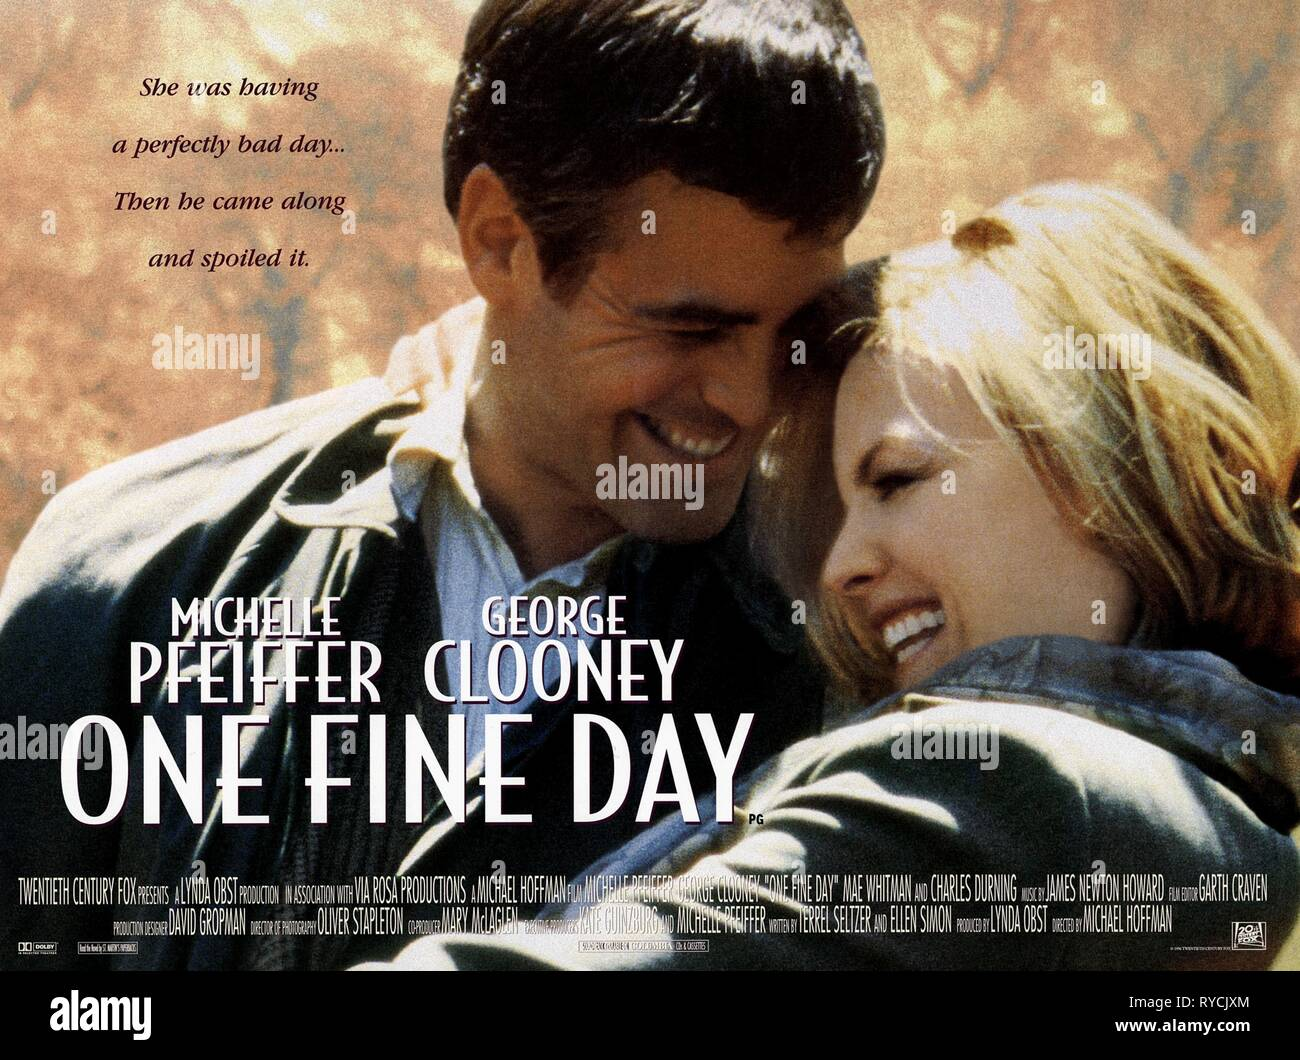 GEORGE CLOONEY, MICHELLE PFEIFFER, ONE FINE DAY, 1996 Stock Photo